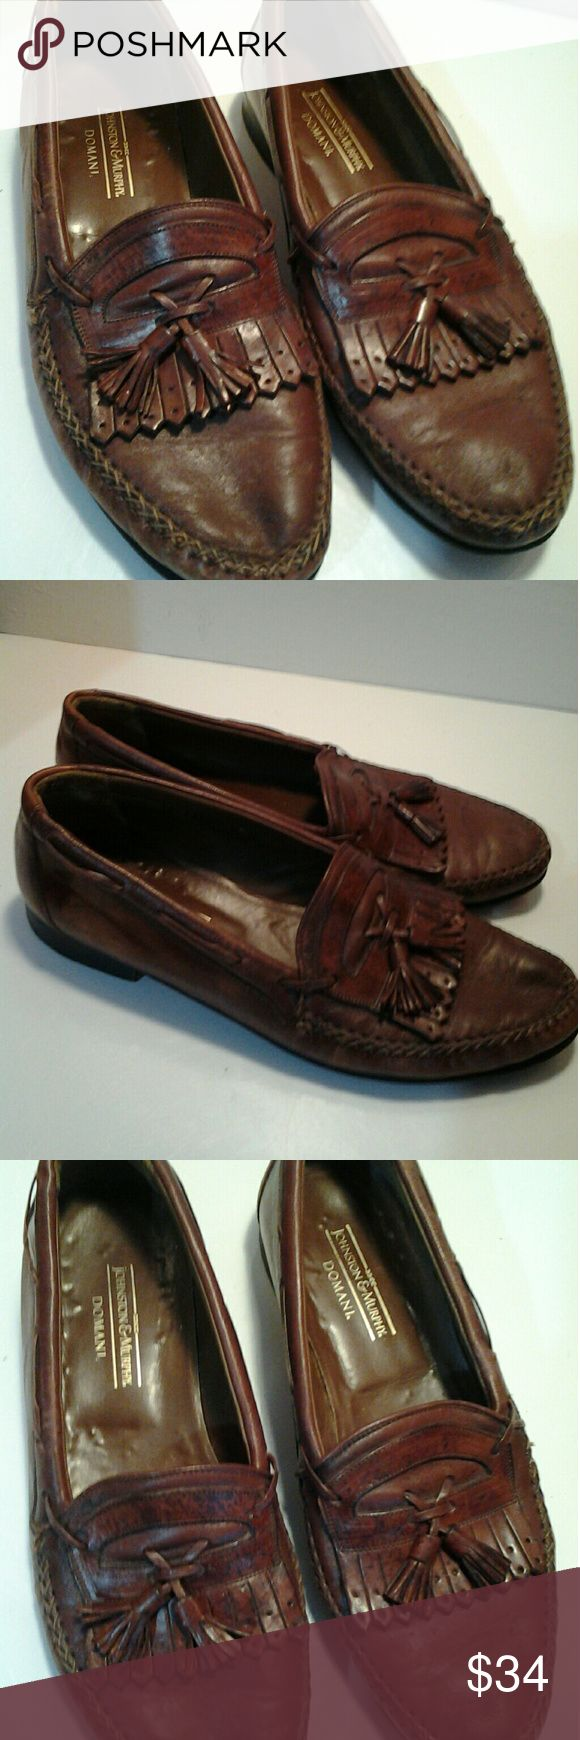 Johnson and Murphy Men's  Leather Loafers Johnson and Murphy Men's Brown Leather Loafers with tassels. Size 11M. Great Condition. Very little wear. Murphy and Johnson Shoes Loafers & Slip-Ons